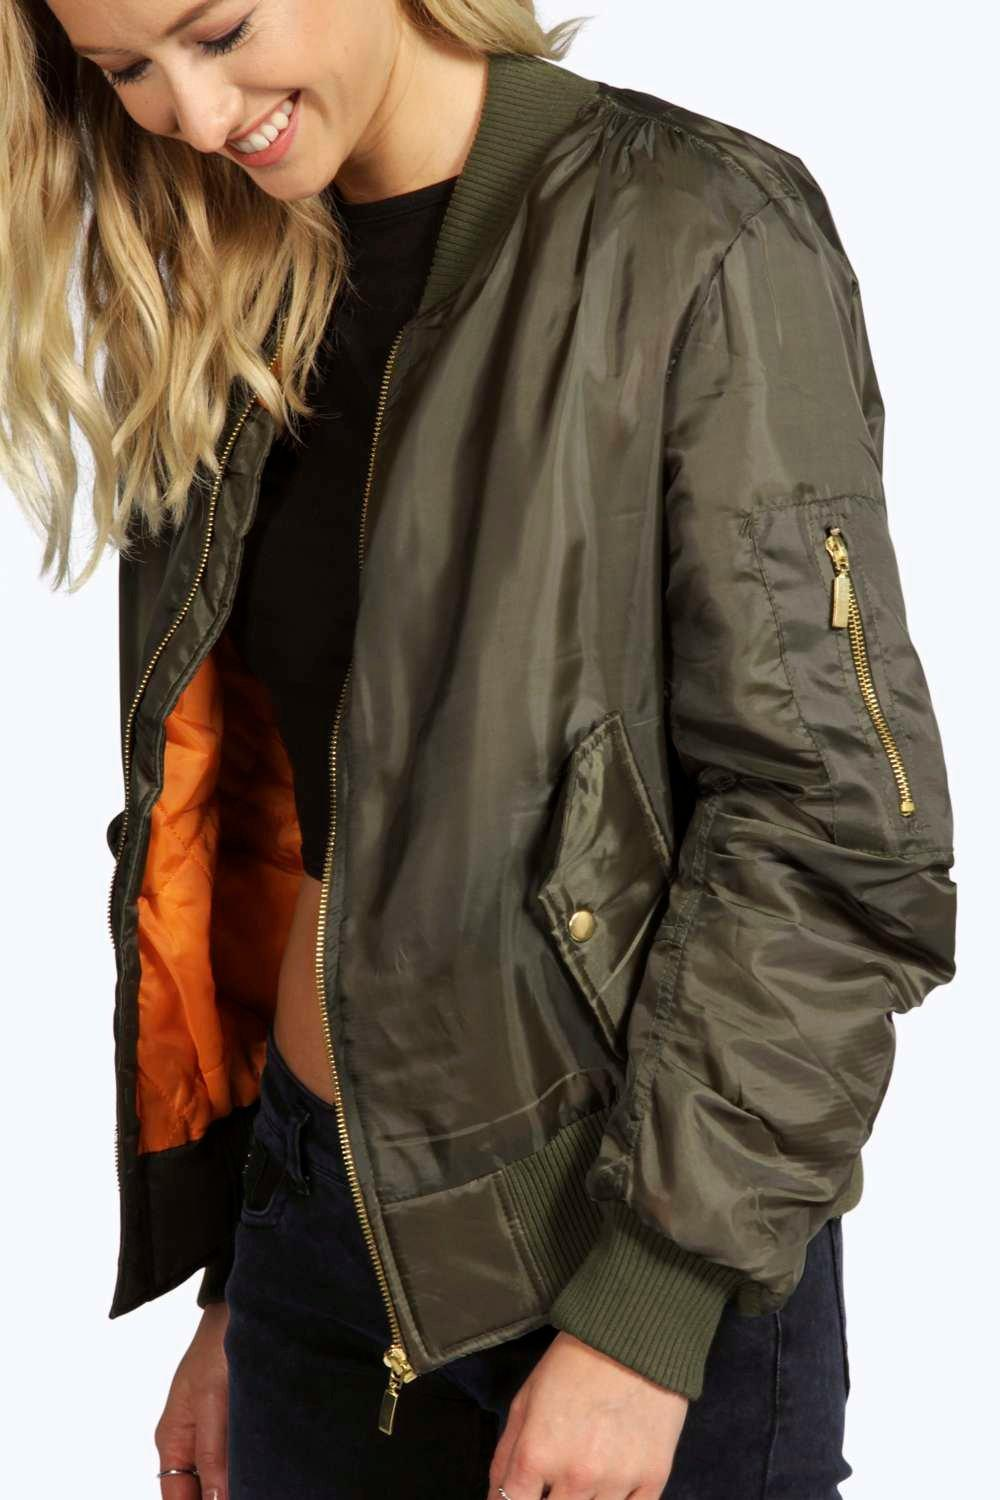 A bomber jacket is a staple piece to have in your closet, no matter what the season is! These are the top cute and trendy ways to wear bomber jacket outfits.